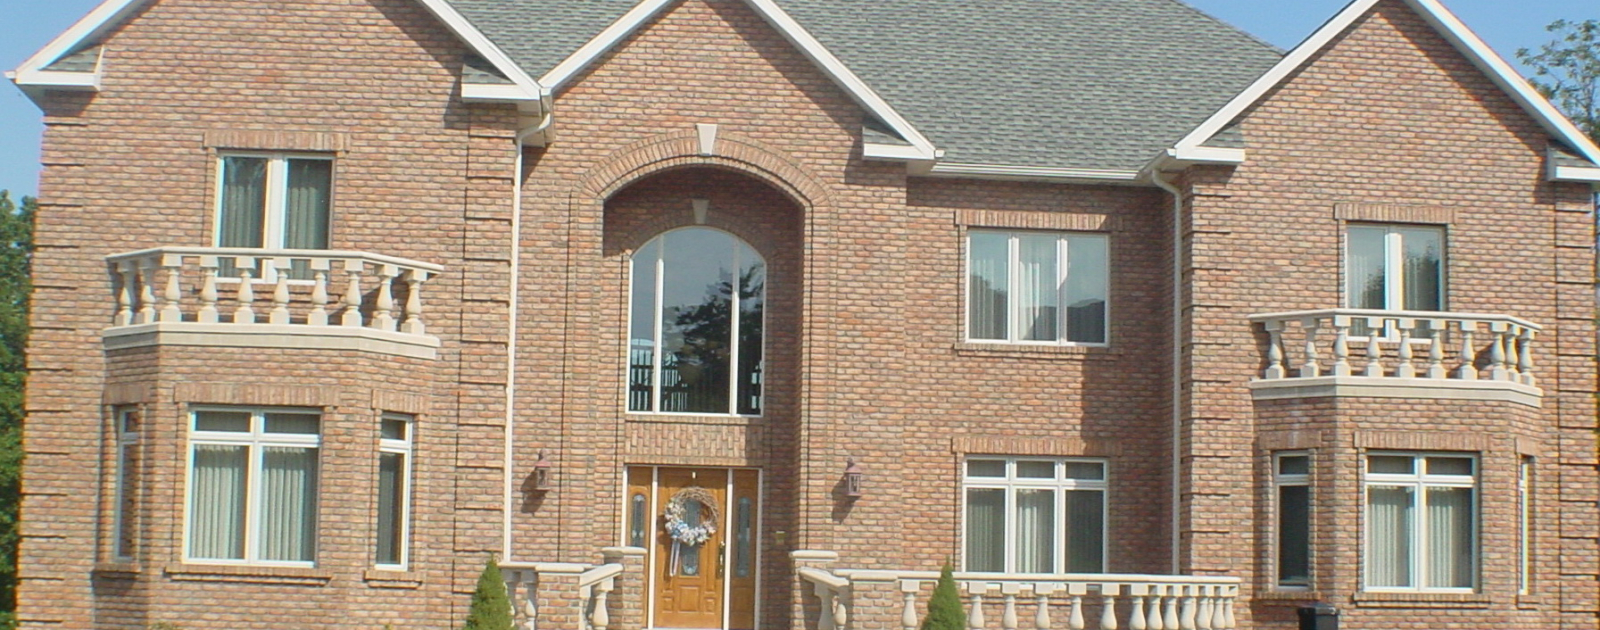 Widest Selection of Brick in North Central Pa!